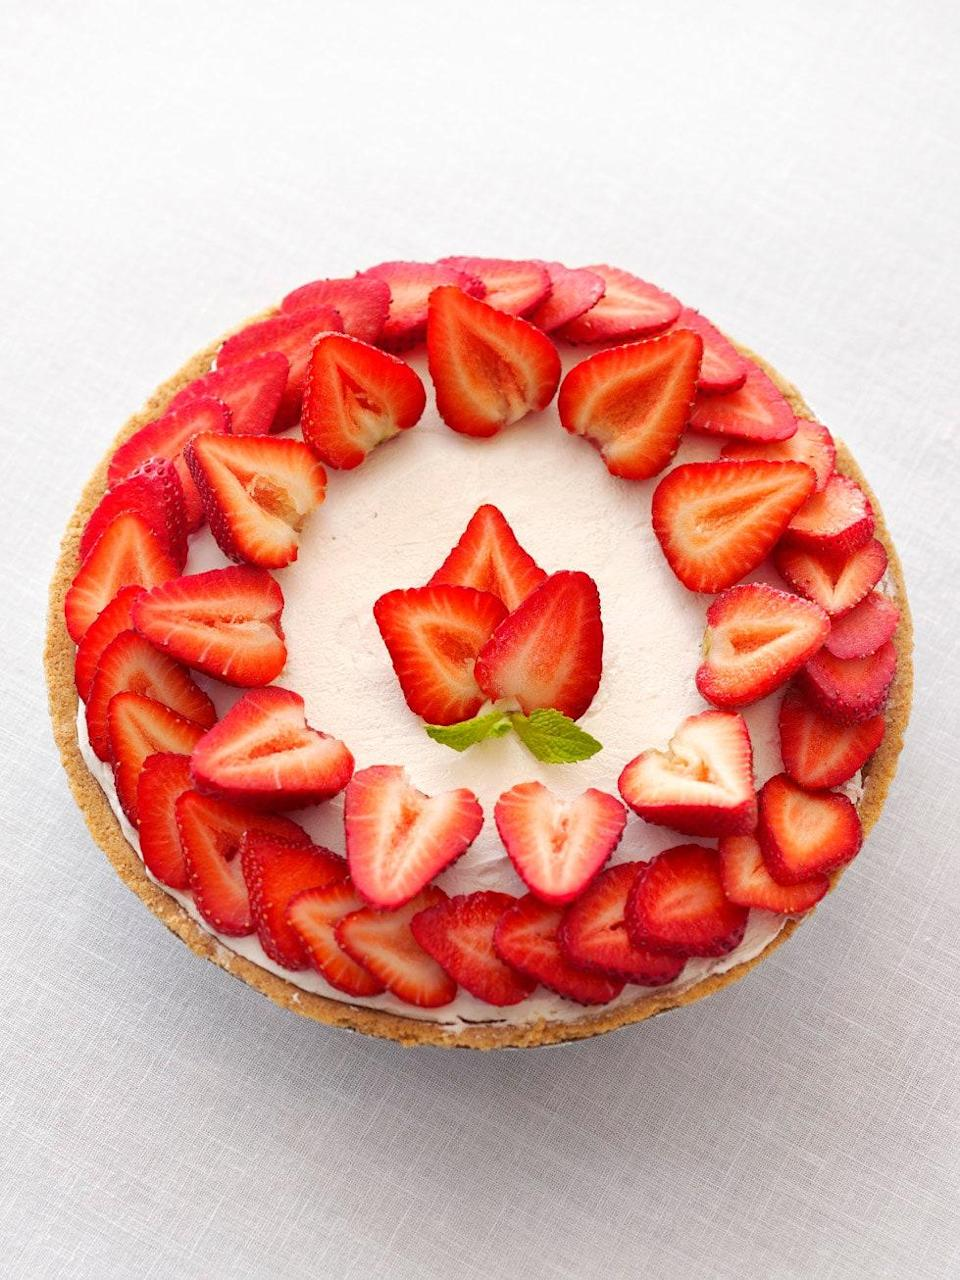 """This no-bake cheesecake is too pretty to eat (almost). Beat cream cheese with sugar, sour cream, and vanilla before folding in whipped cream. Scoop your mixture into a pie crust and let it chill in the fridge for four hours. Add the strawberries and the dessert is ready. <a href=""""https://www.epicurious.com/recipes/food/views/no-bake-strawberry-cheesecake-354029?mbid=synd_yahoo_rss"""" rel=""""nofollow noopener"""" target=""""_blank"""" data-ylk=""""slk:See recipe."""" class=""""link rapid-noclick-resp"""">See recipe.</a>"""